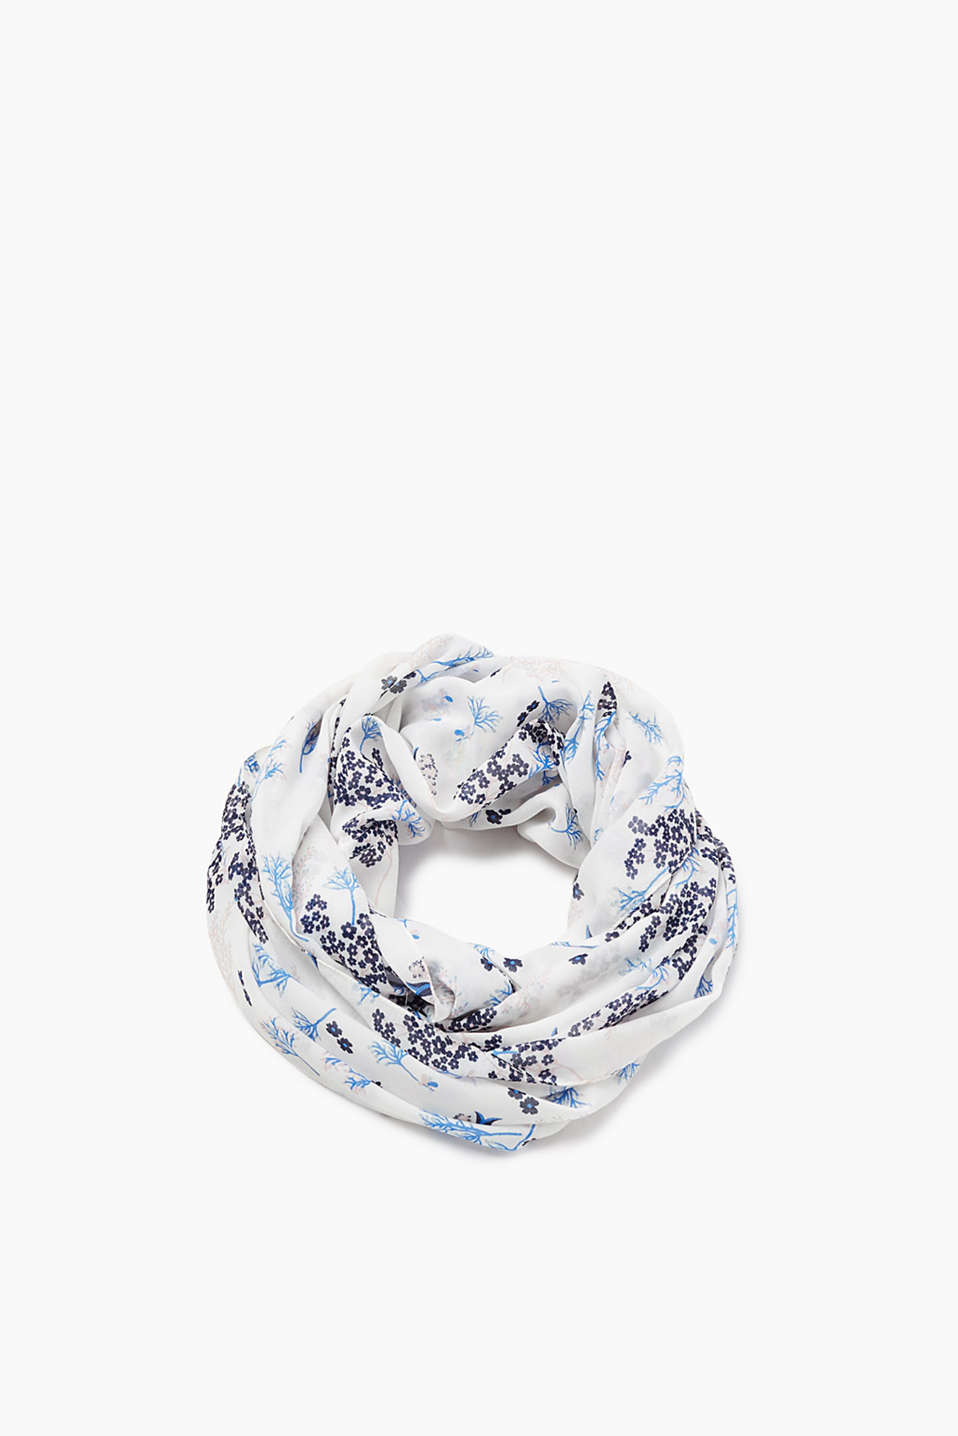 Snood in a summery look made of soft fabric